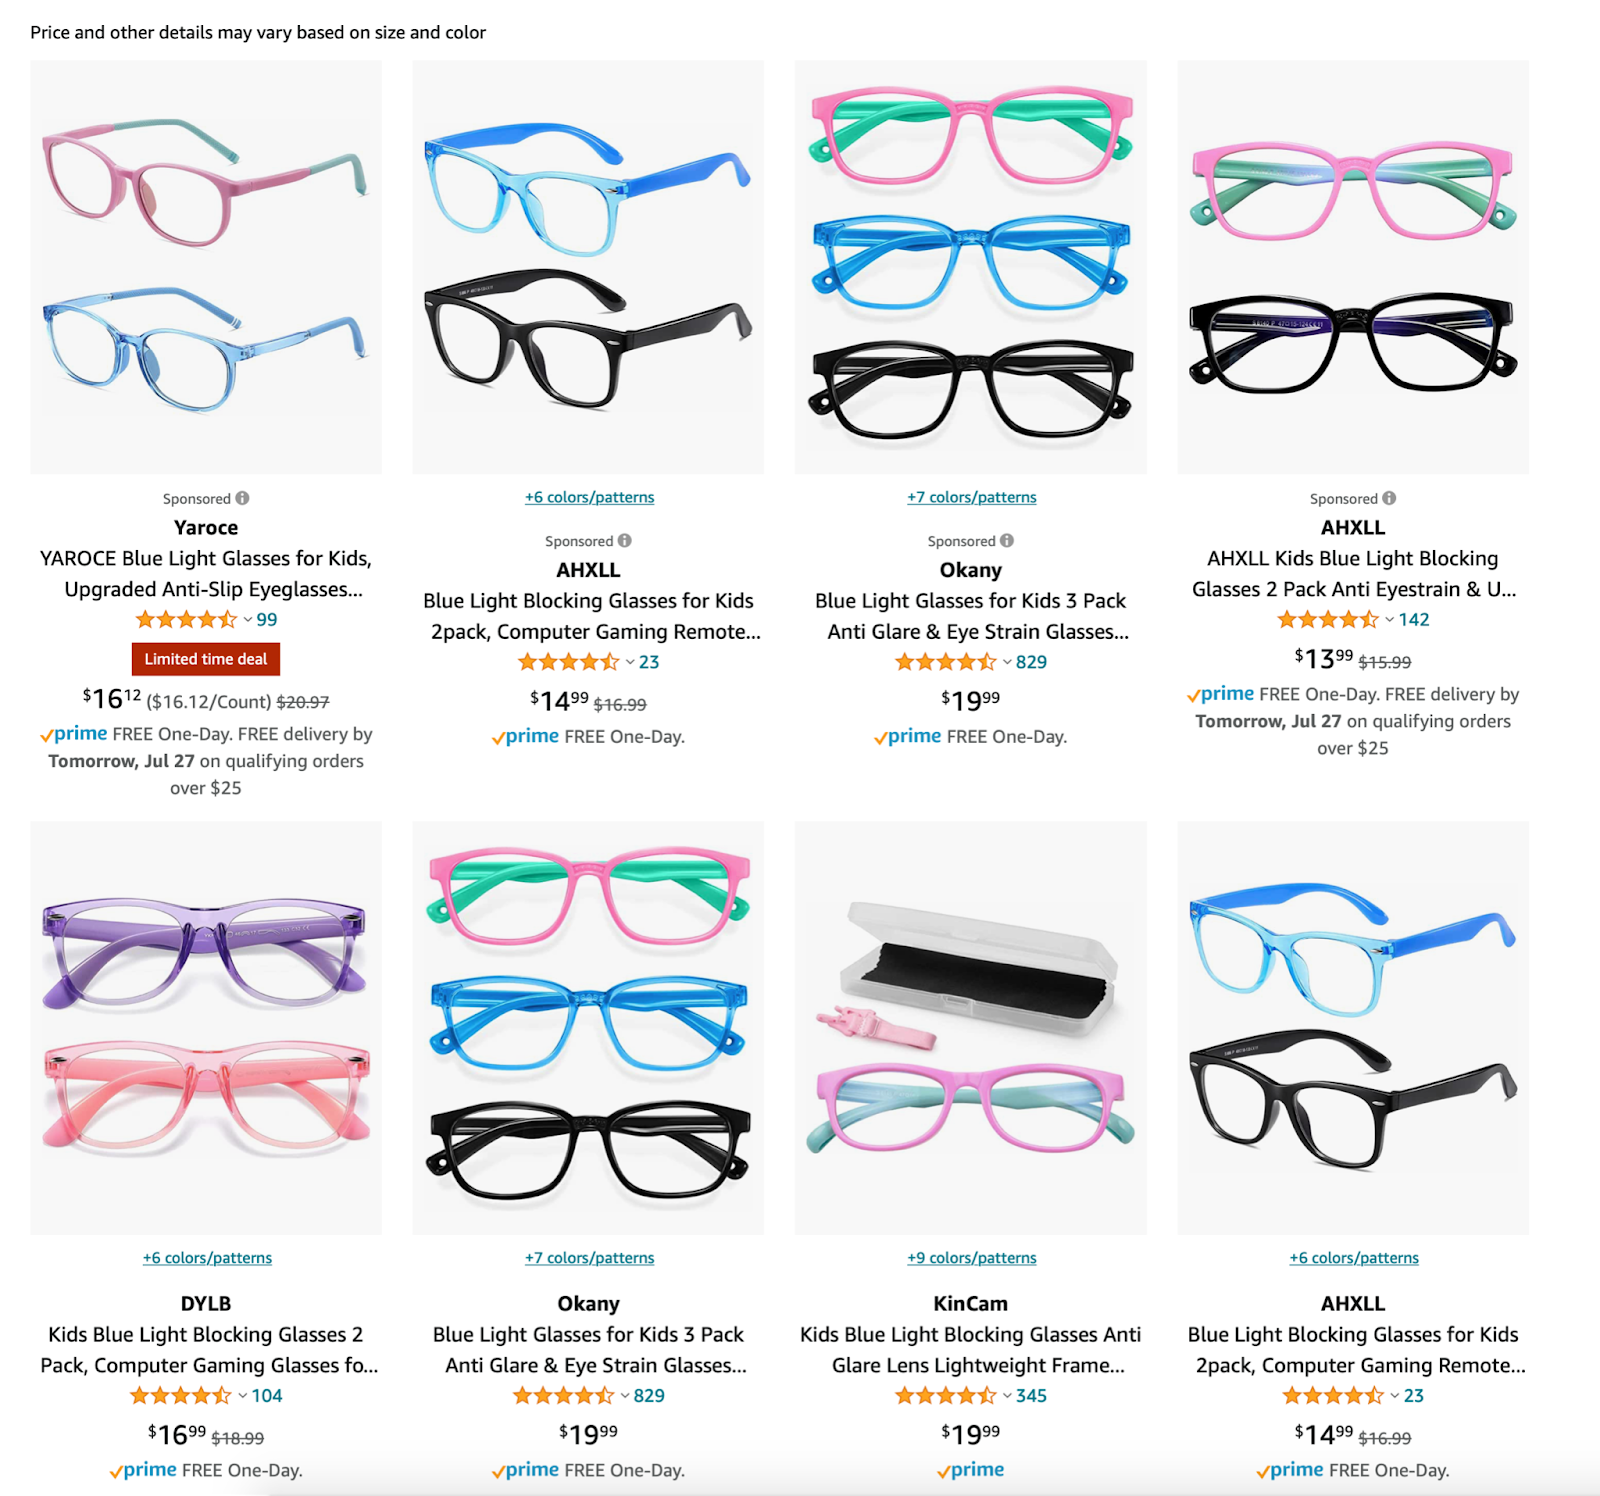 Back to school in style - Blue light glasses for kids